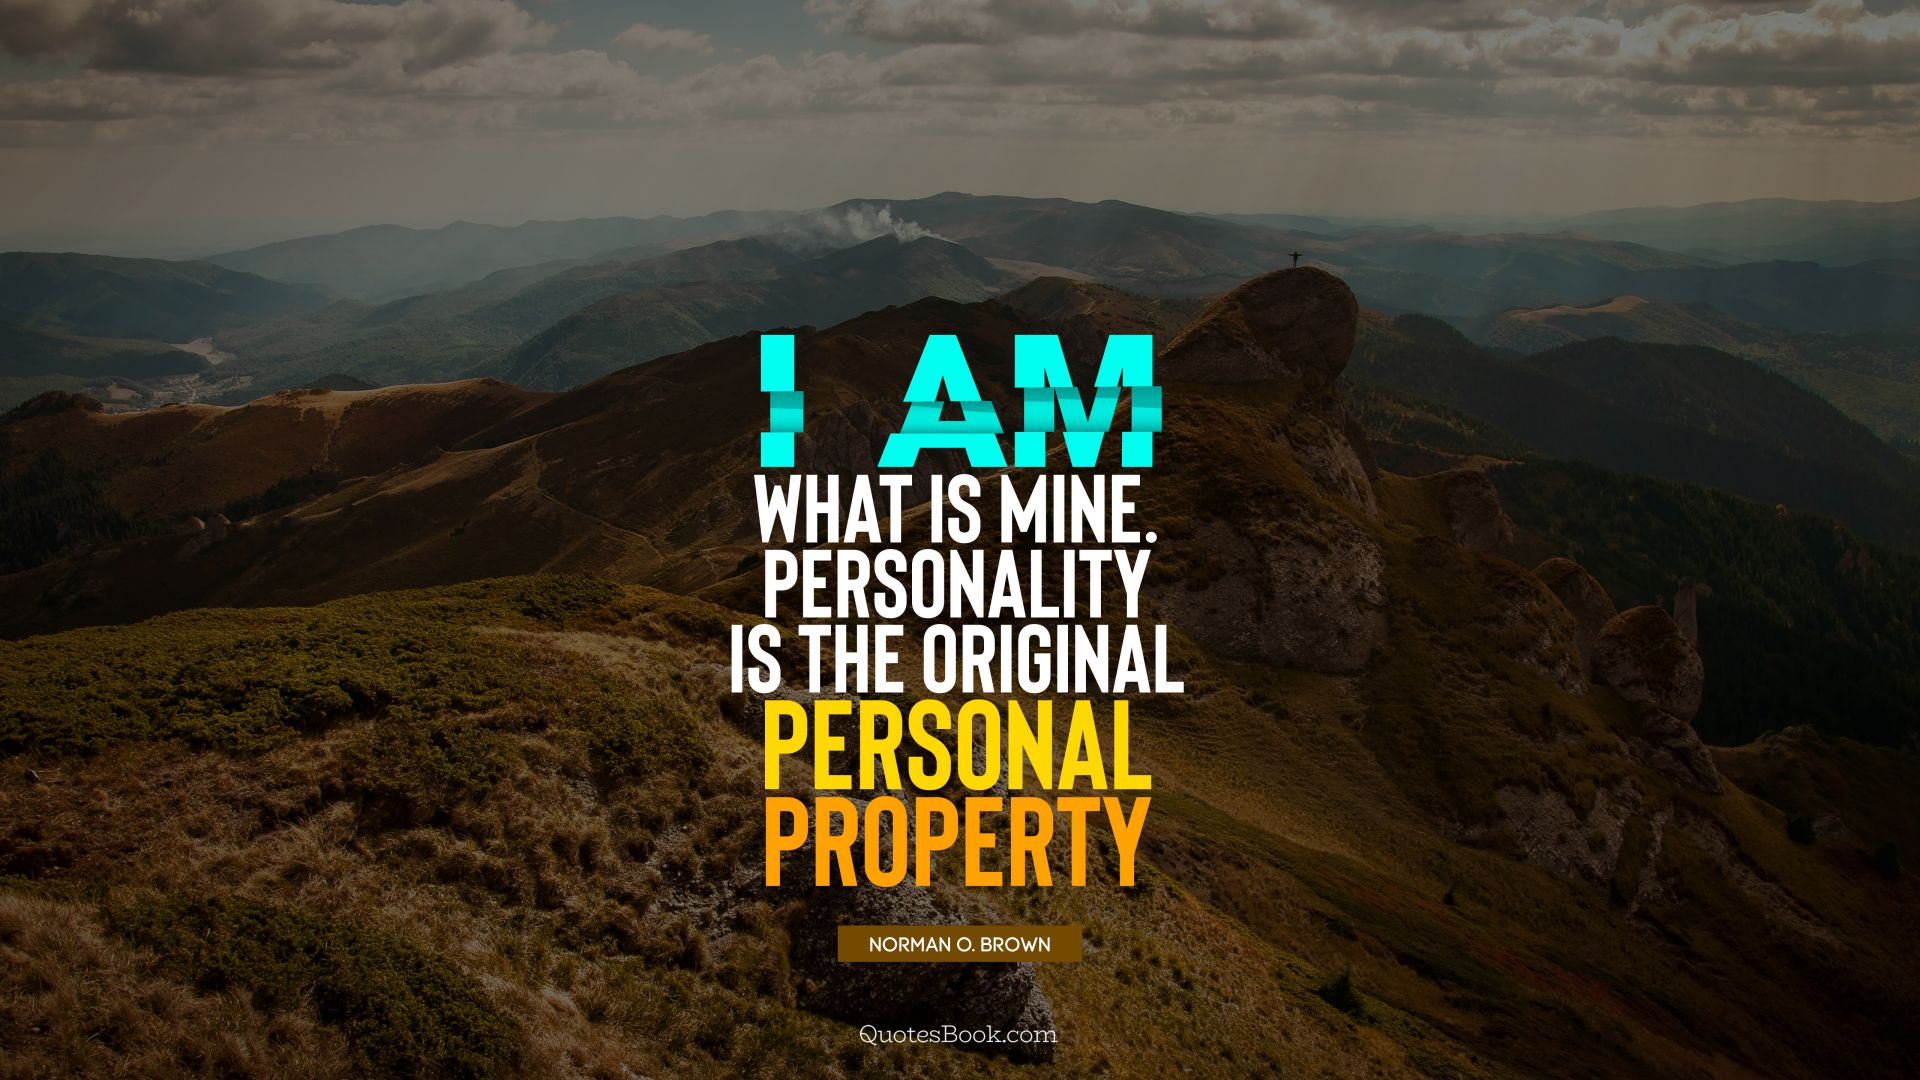 I am what is mine. Personality is the original personal property. - Quote by Norman O. Brown